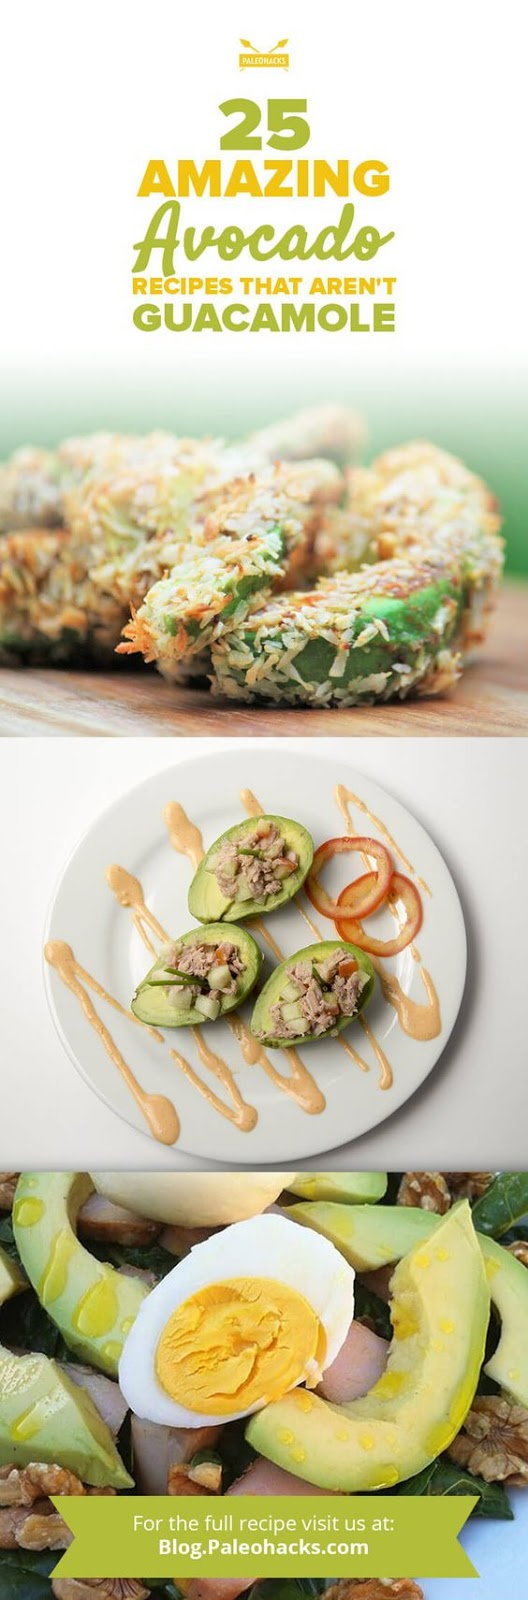 25 Amazing Avocado Recipes That Aren't Guacamole